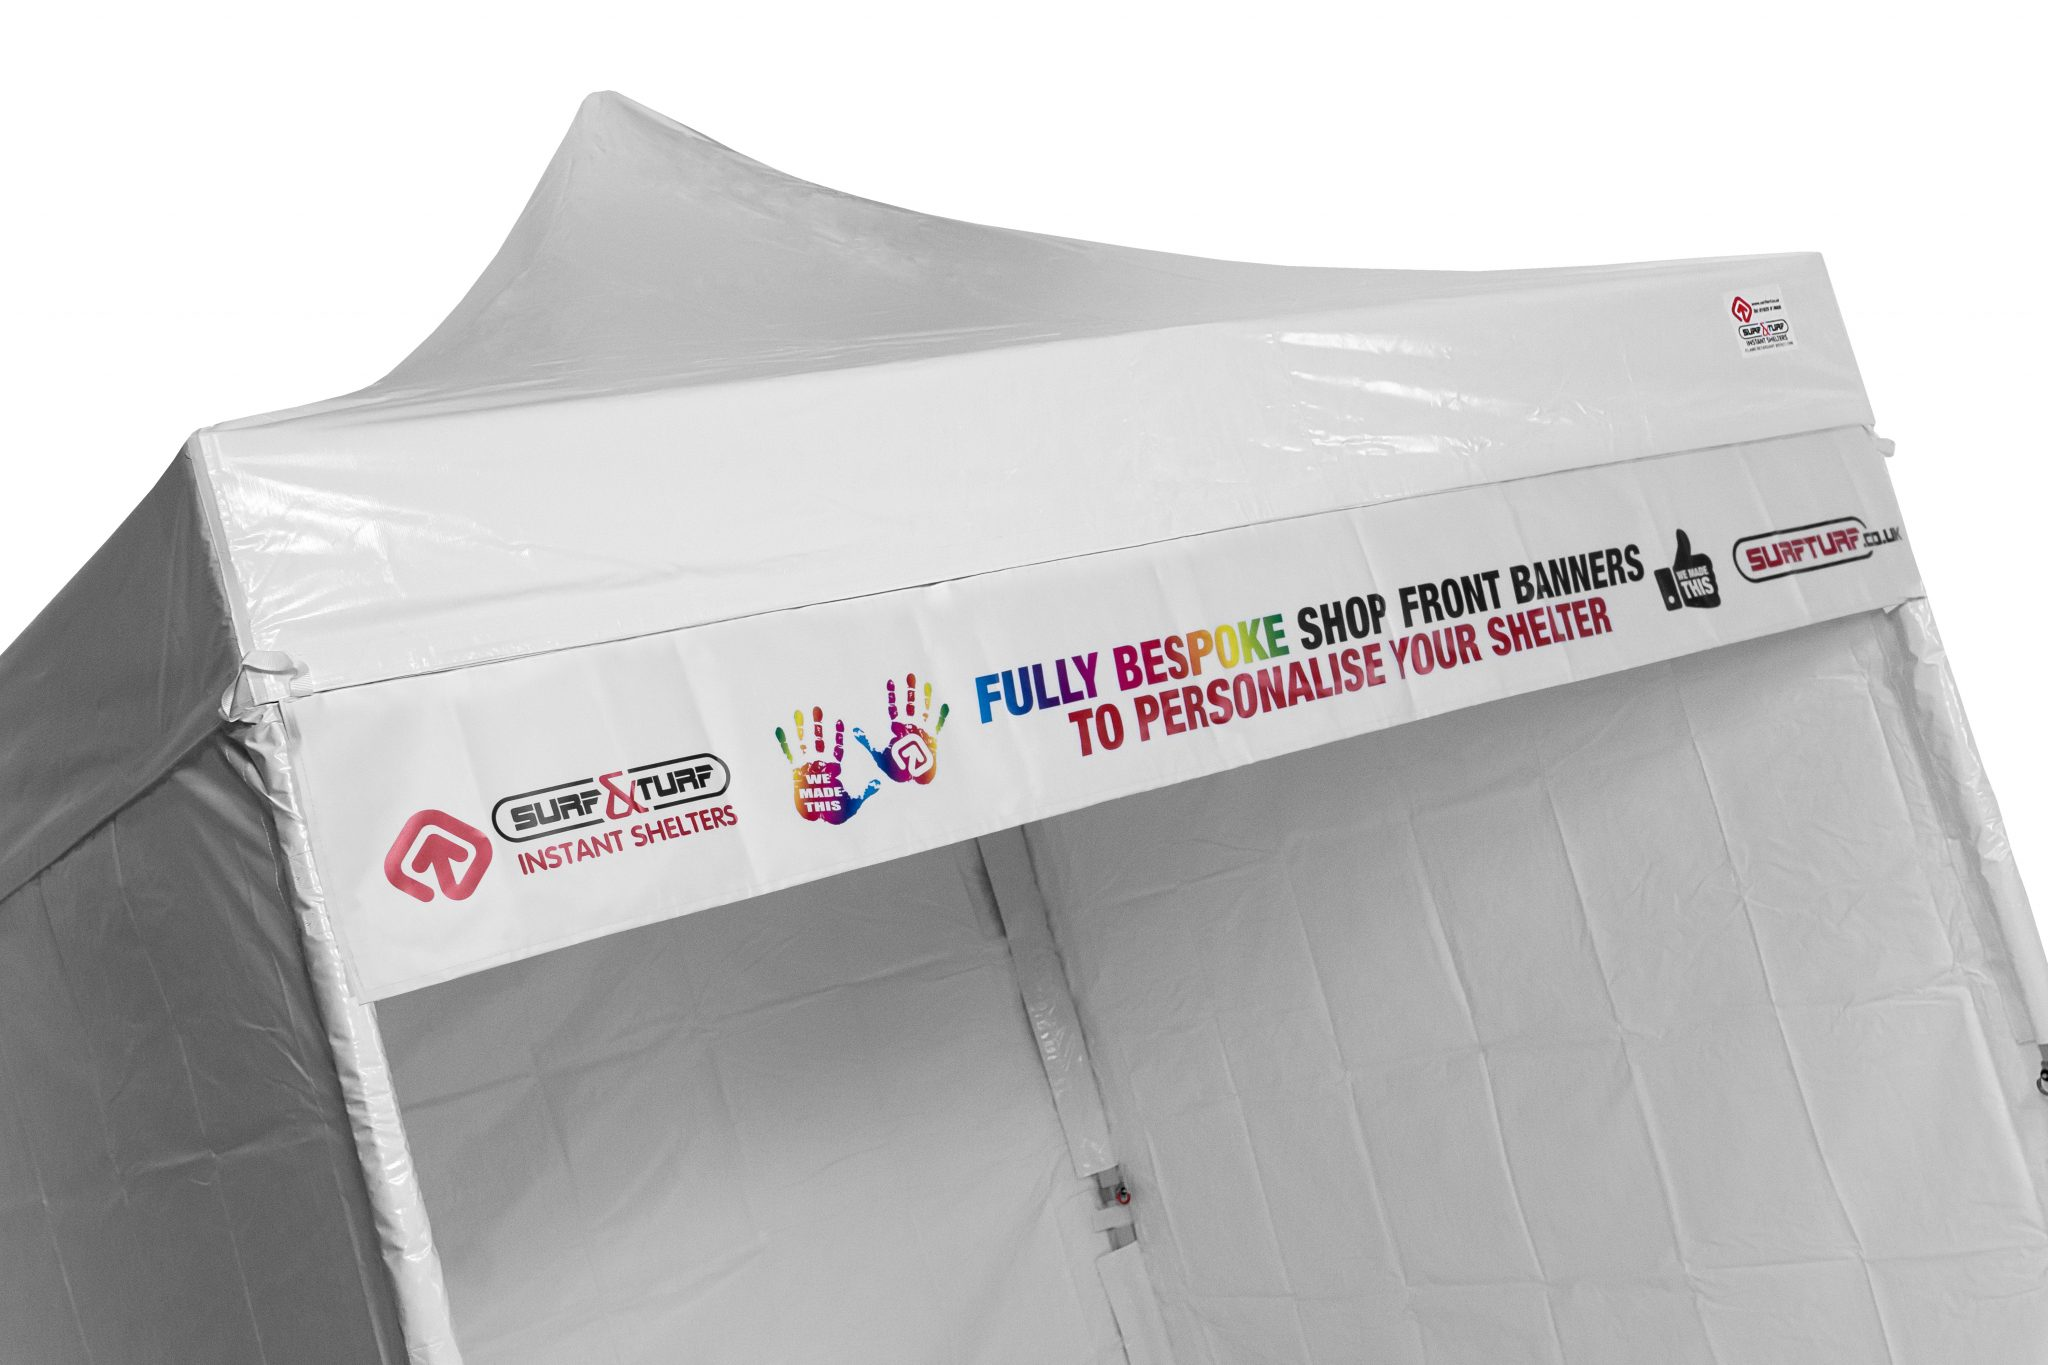 Shop Front Banners